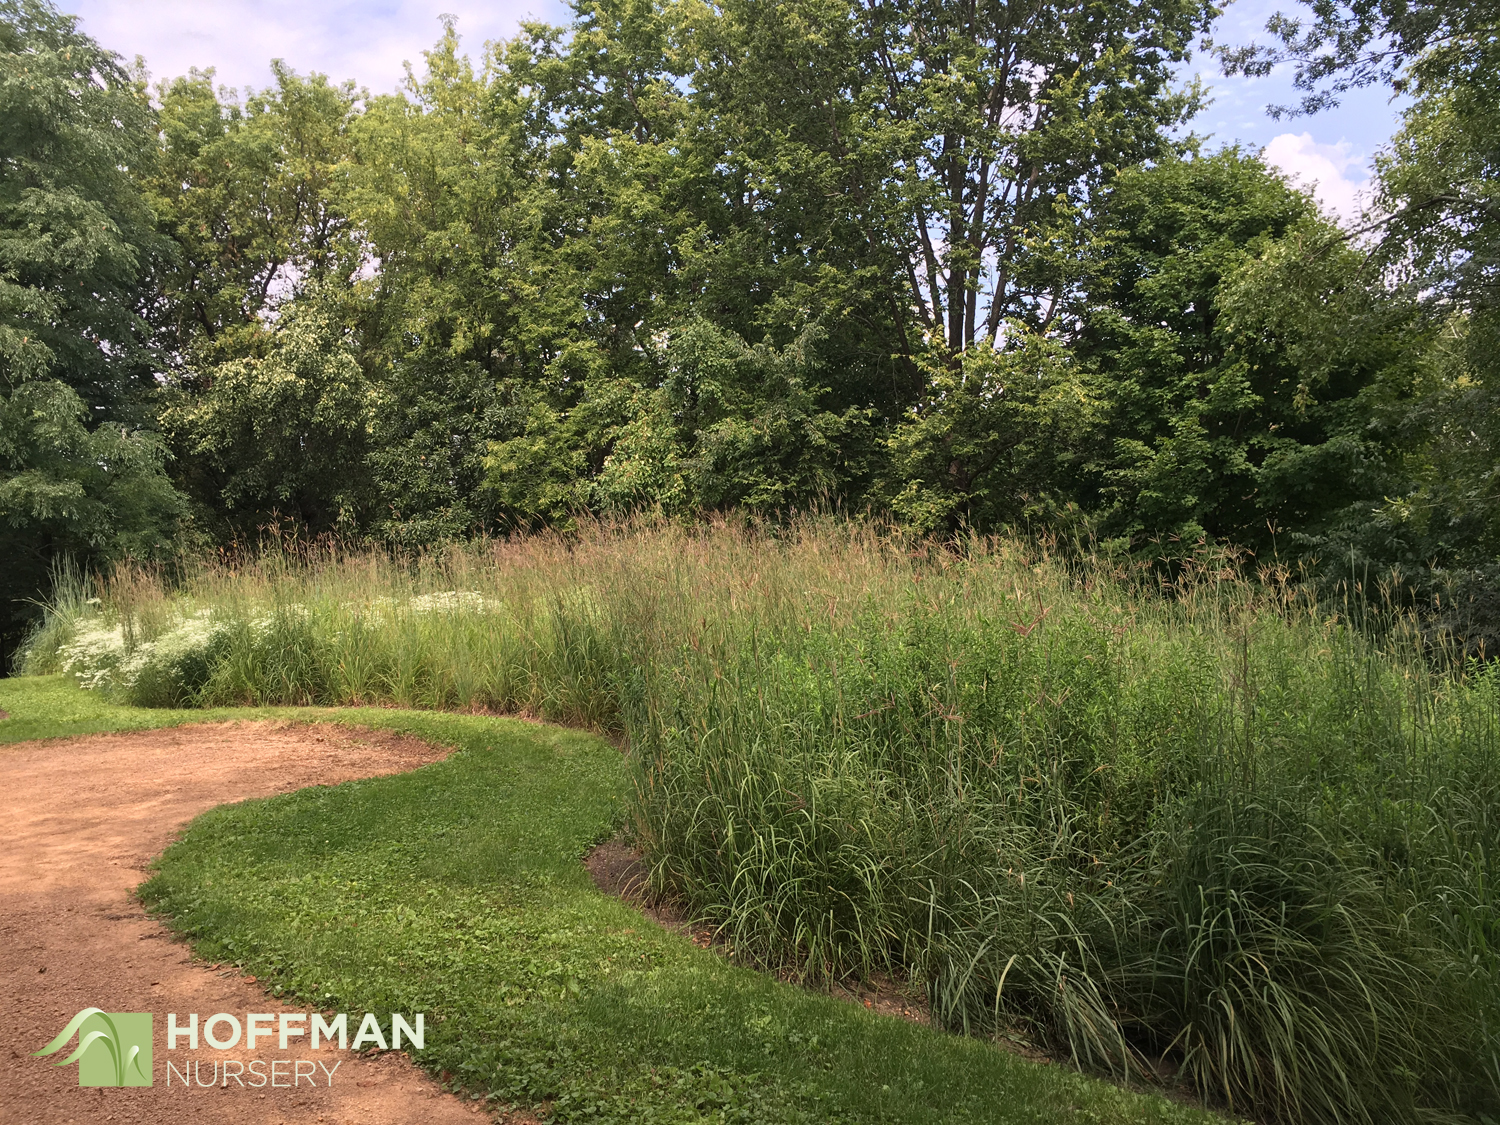 This lush planting of Big Bluestem and other native perennials is beautiful and functional. It harbors and treats the drain field for the property's septic system.